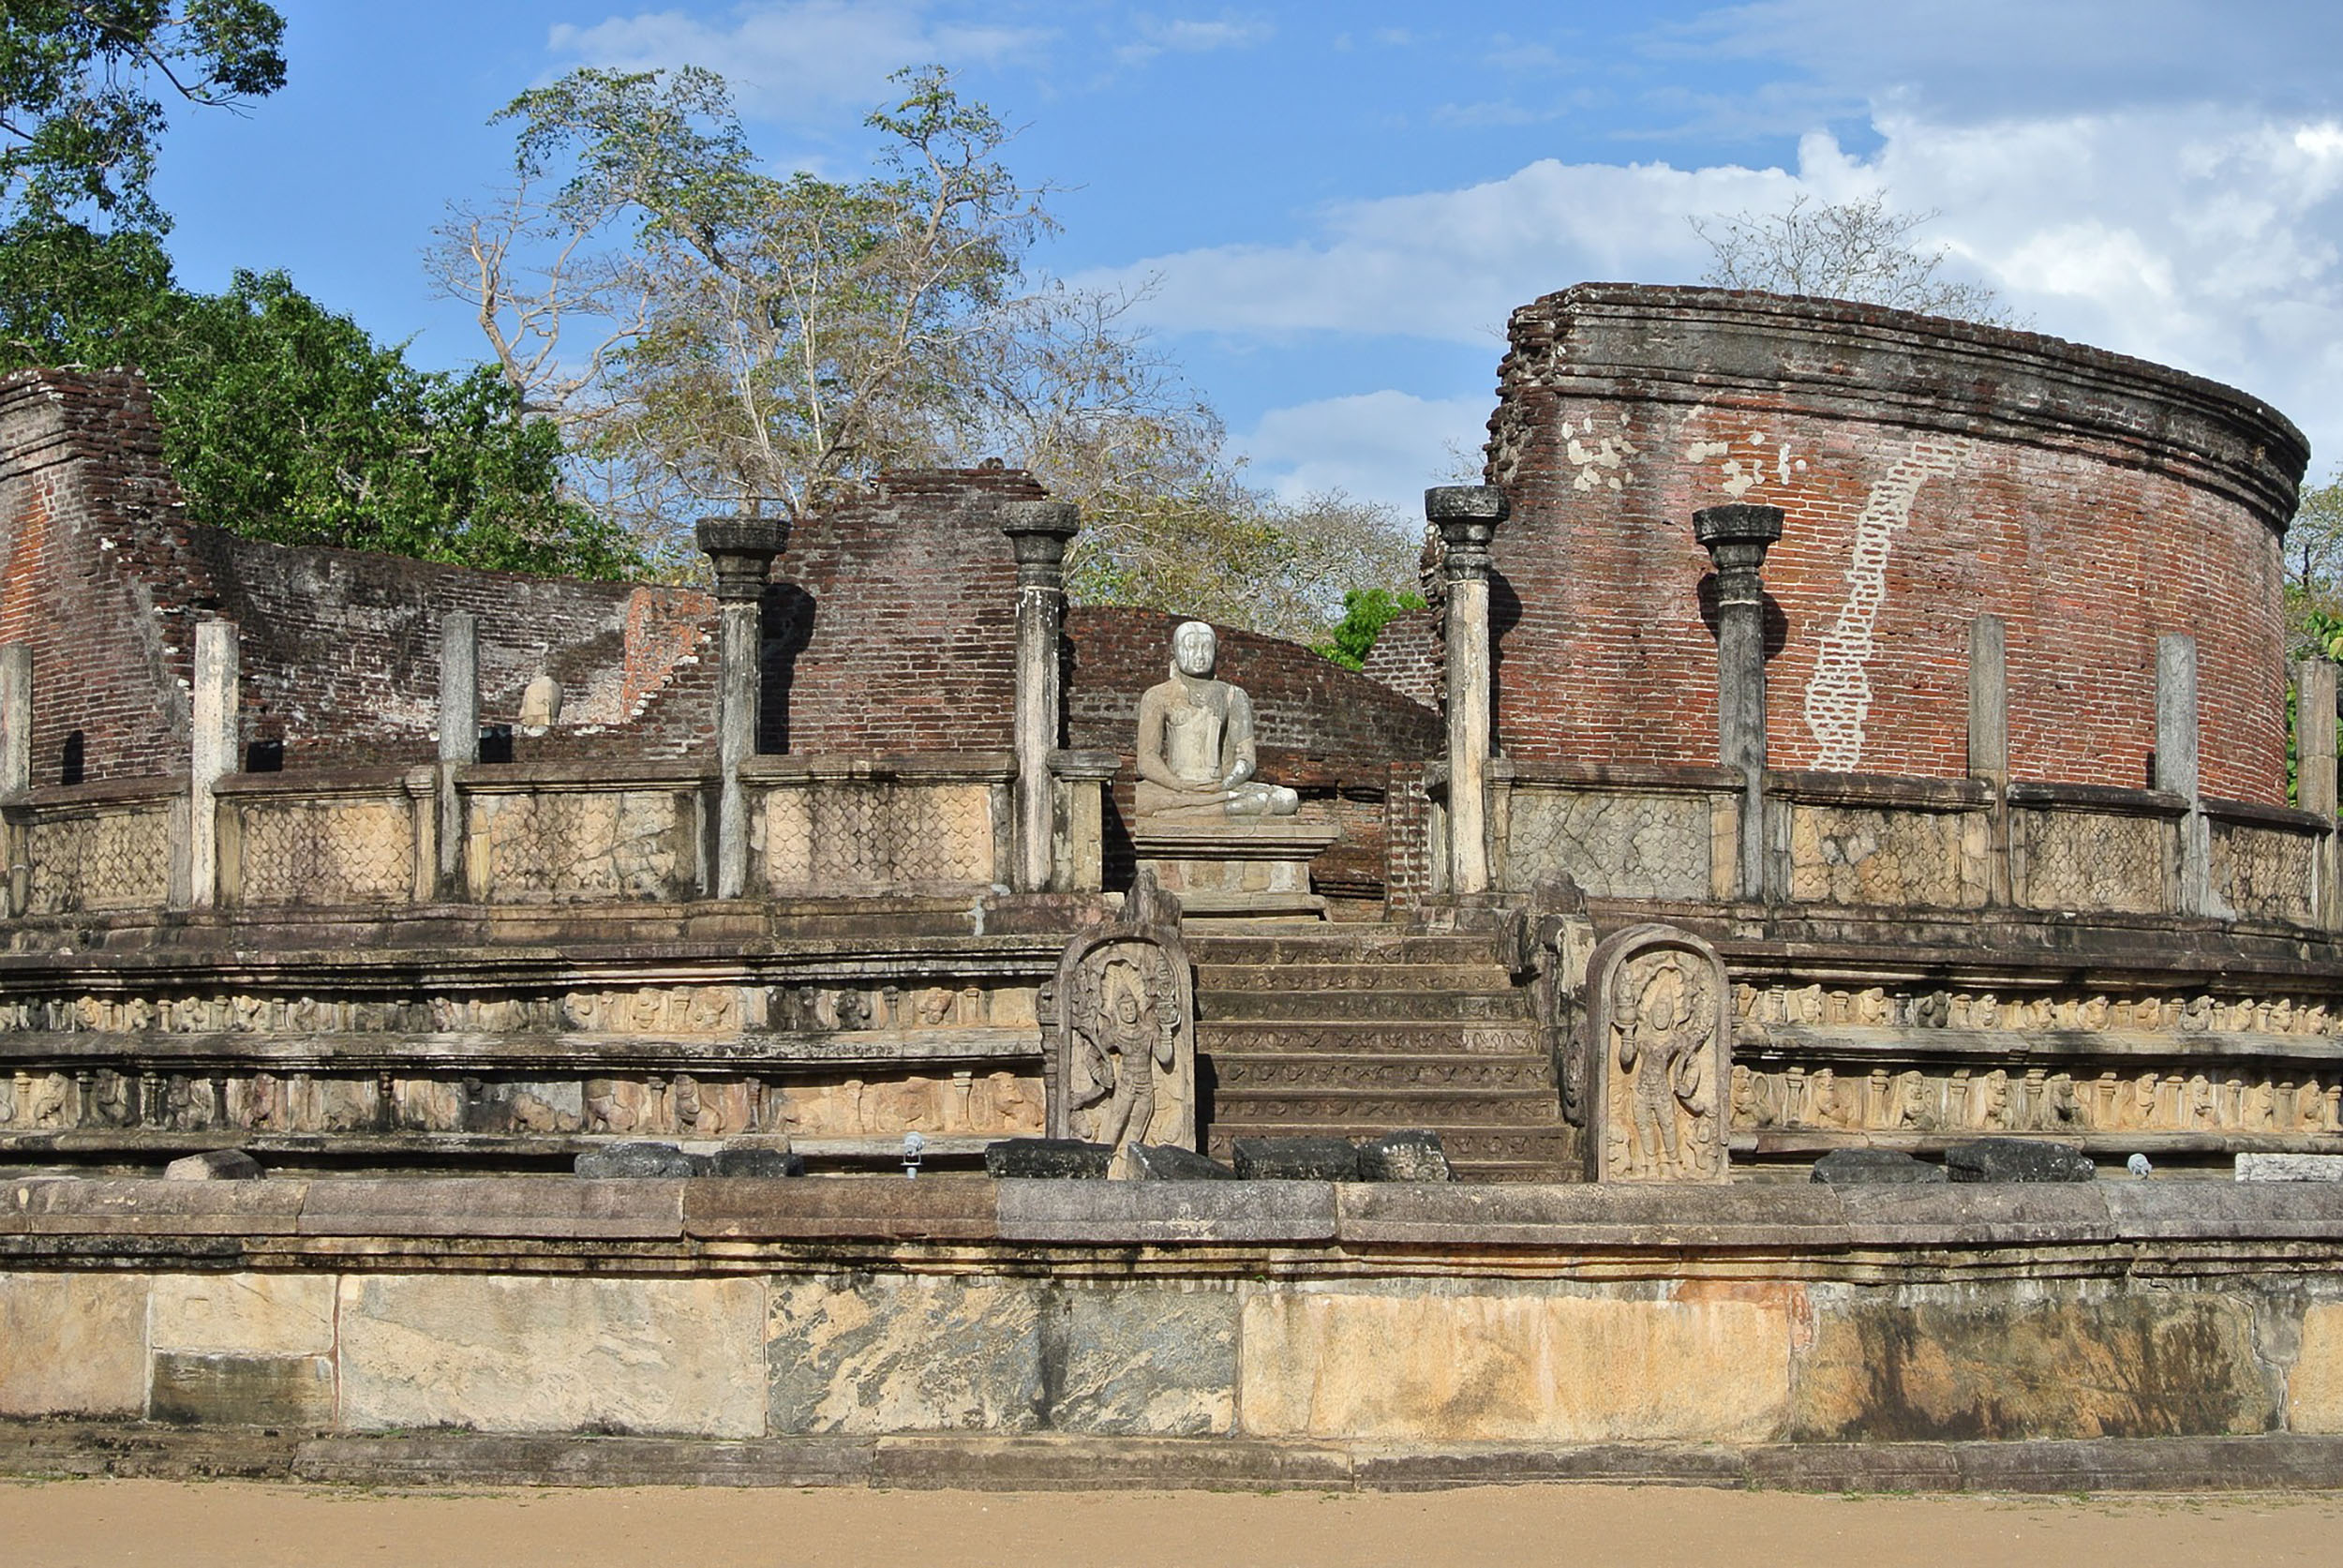 The Sacred Quadrangle in the Polonnaruwa ruins